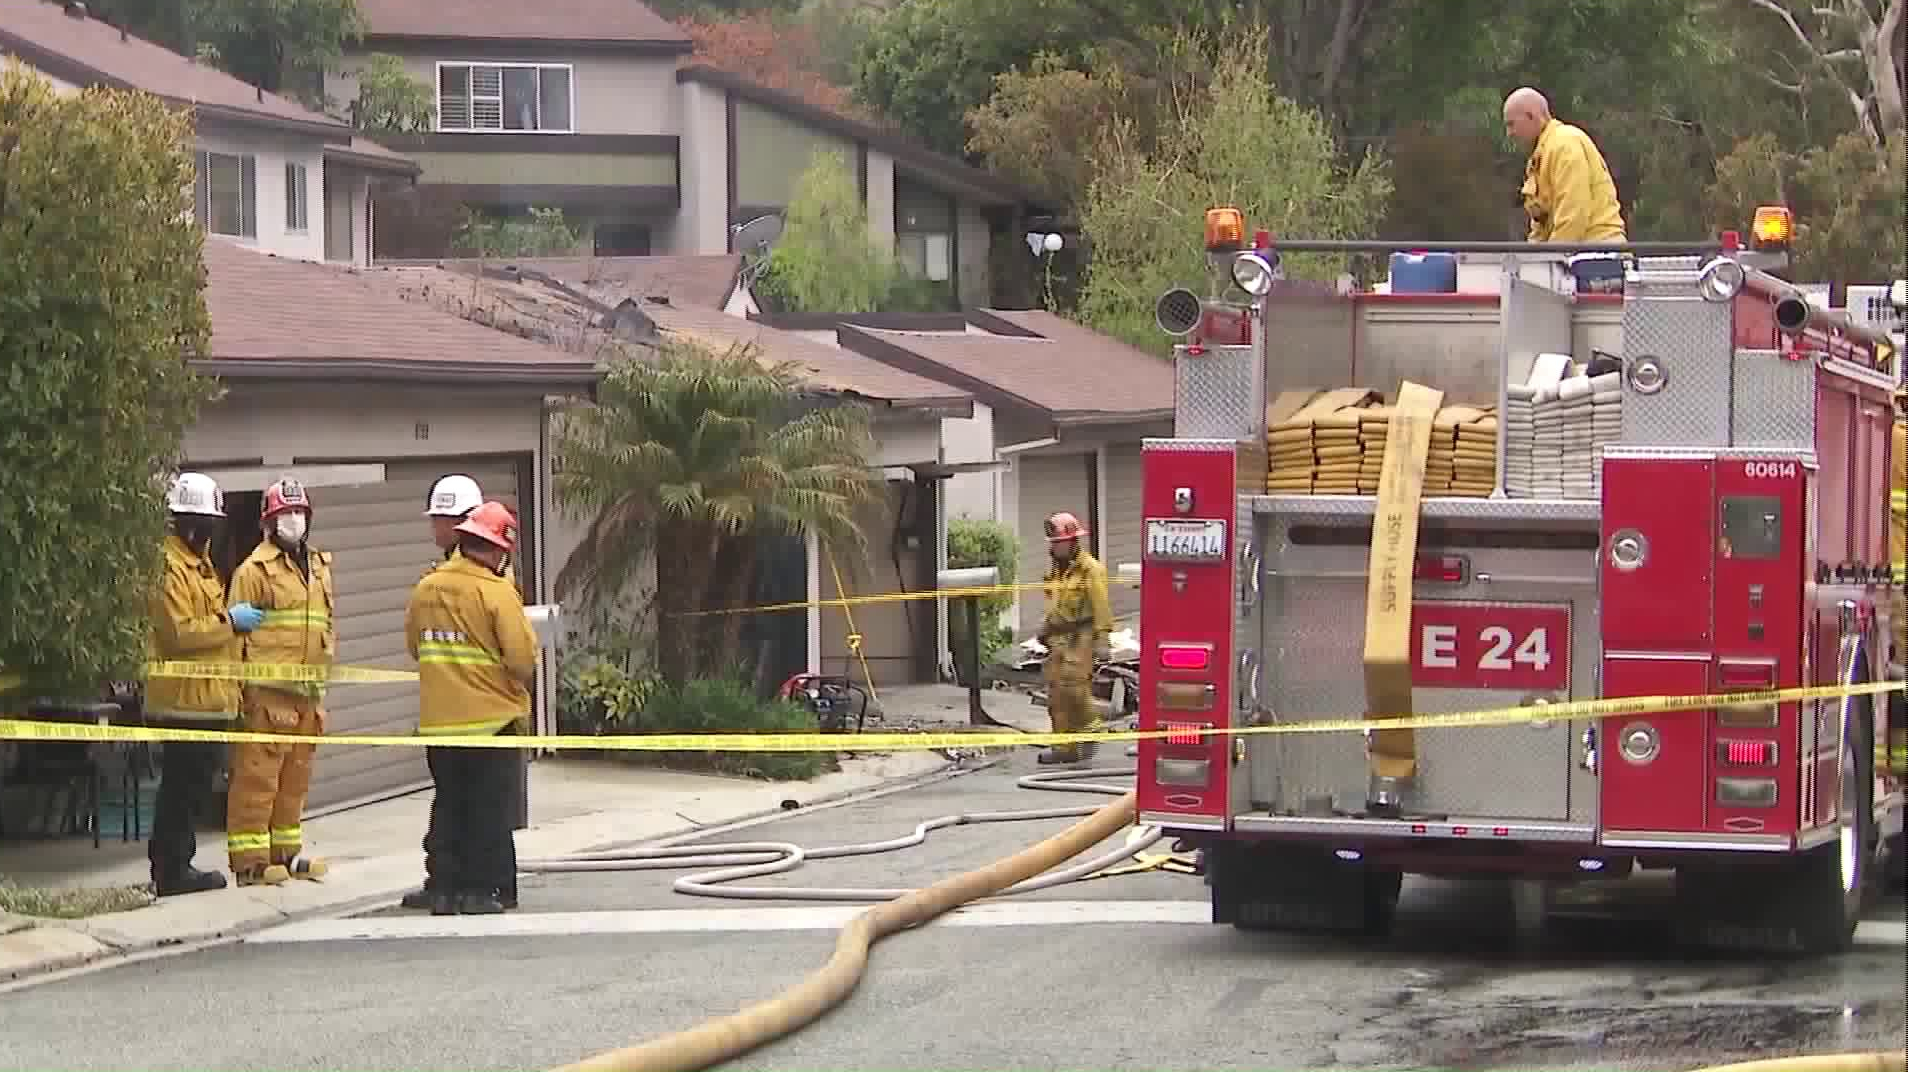 Crews respond to a deadly blaze at a townhouse in Sunland on April 13, 2020. (Credit: KTLA)